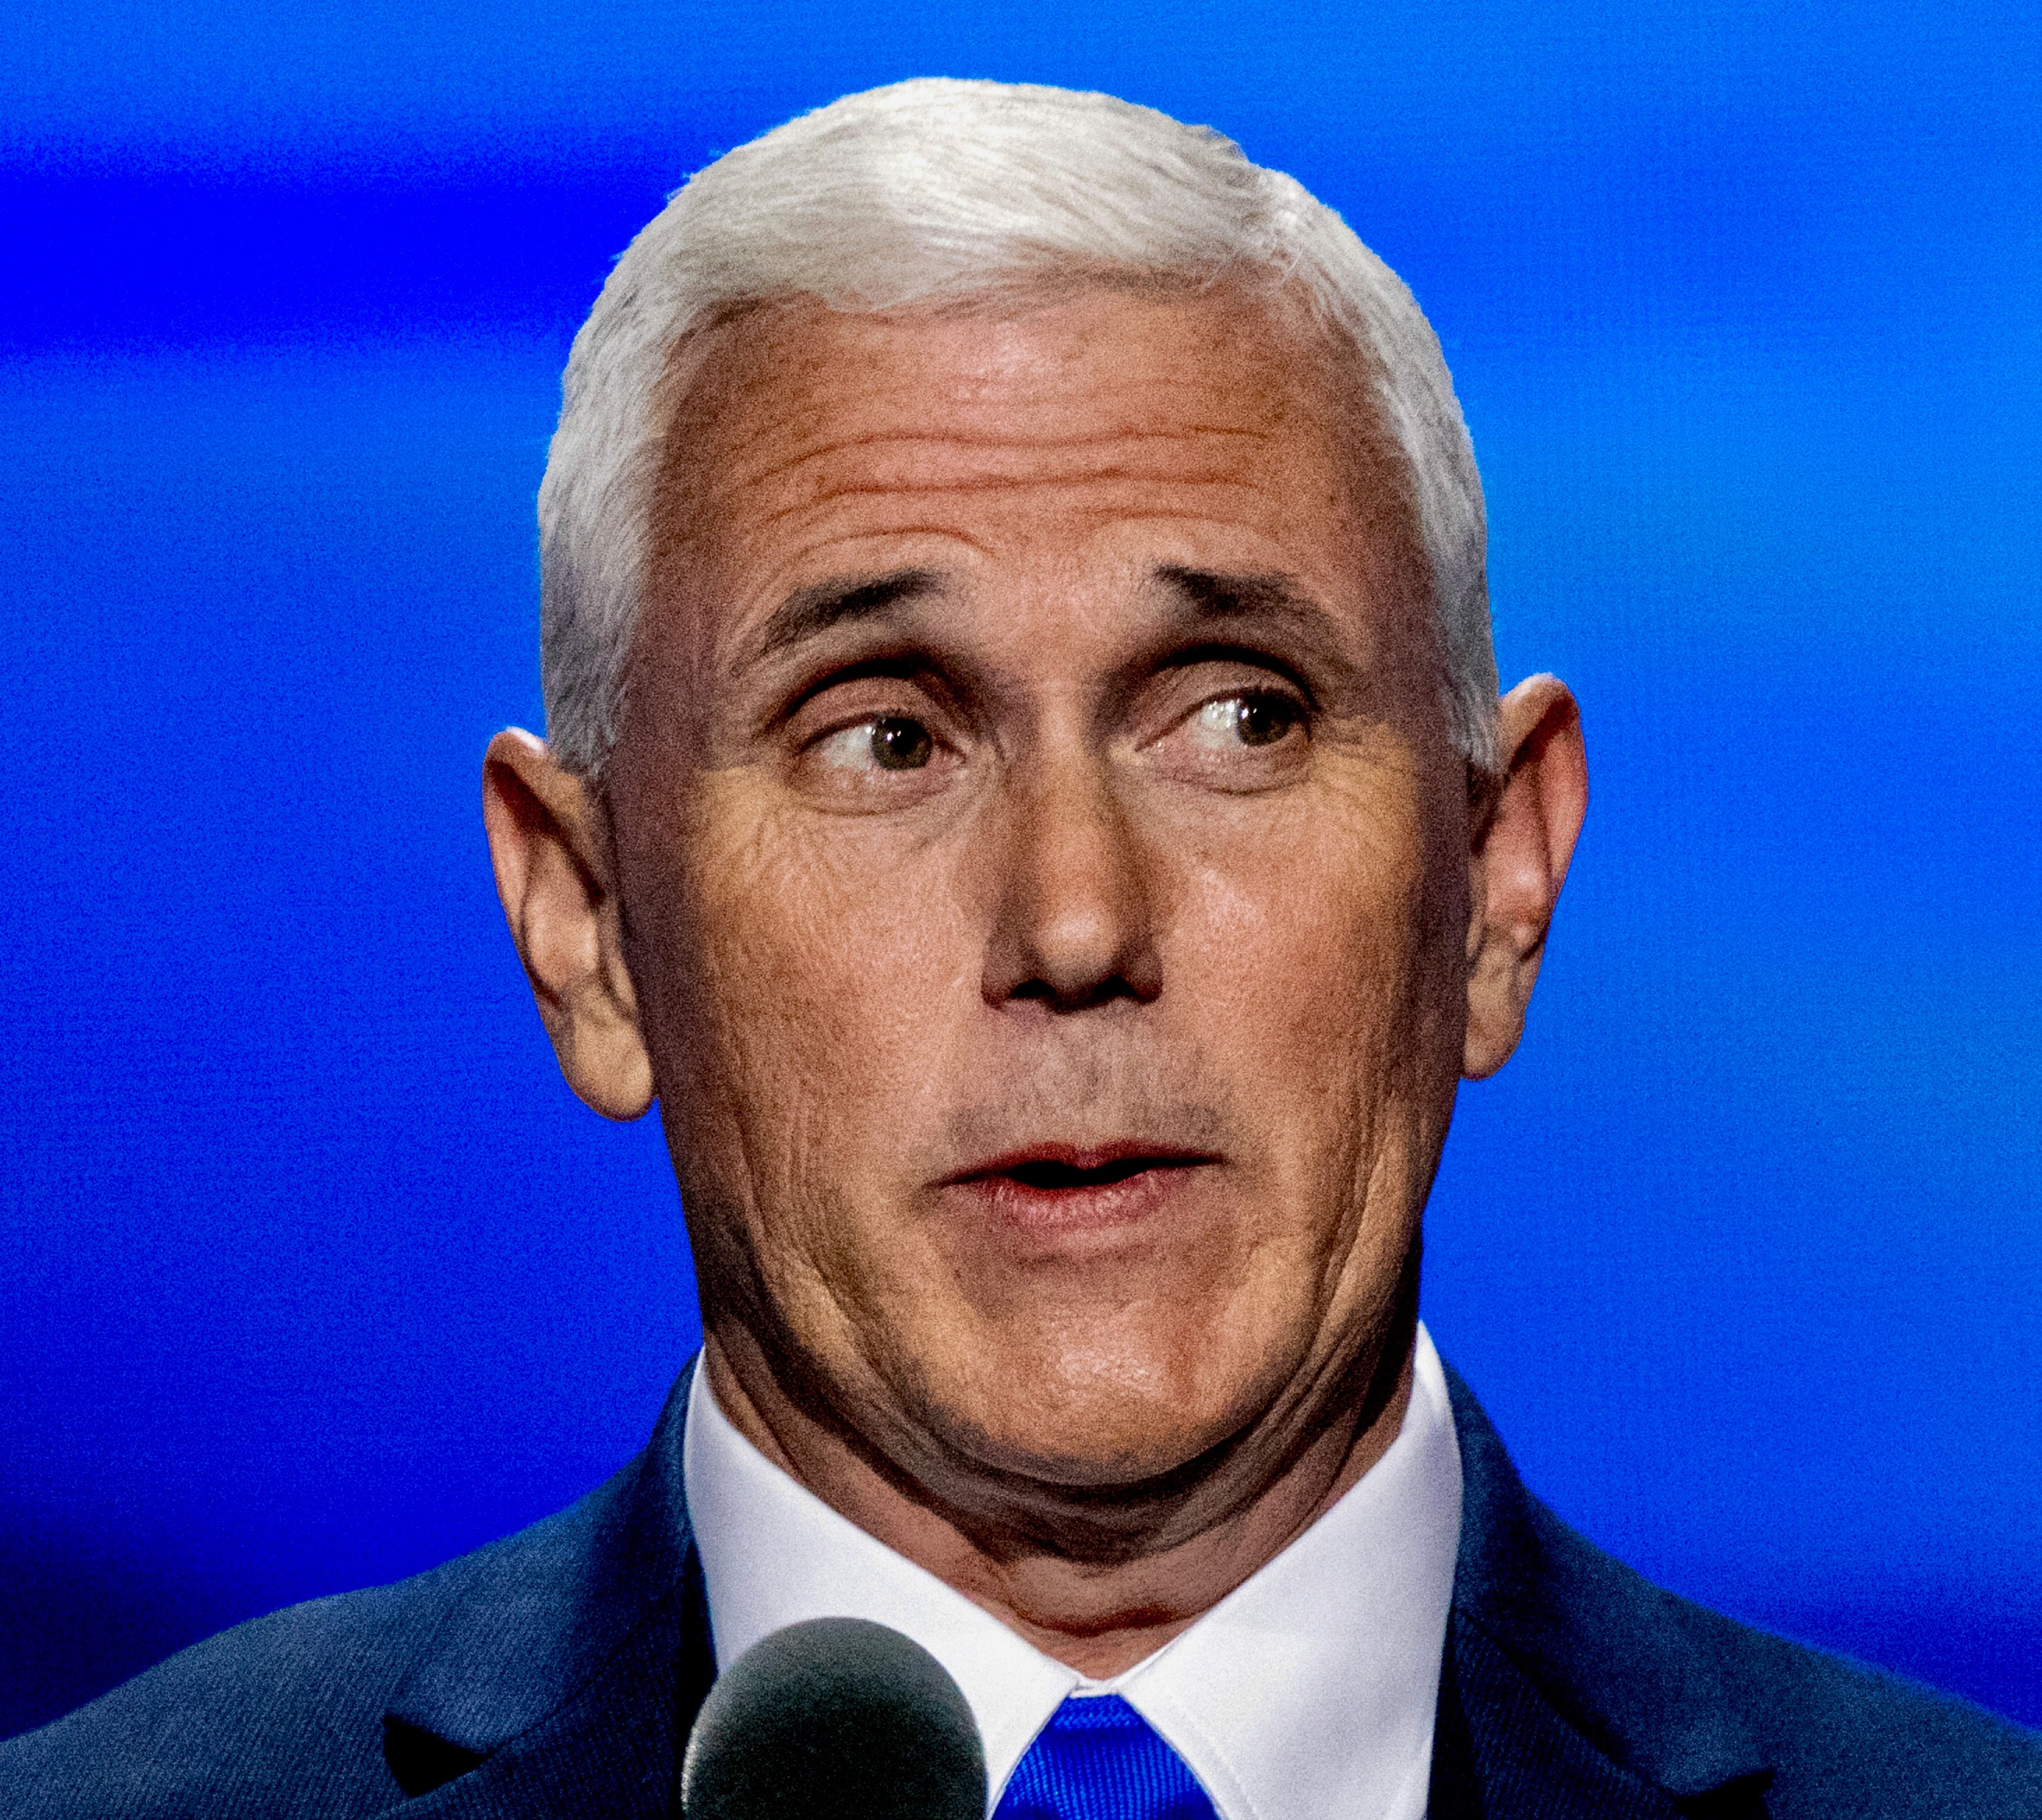 Publisher to release ex-VP Mike Pence's memoir despite objections